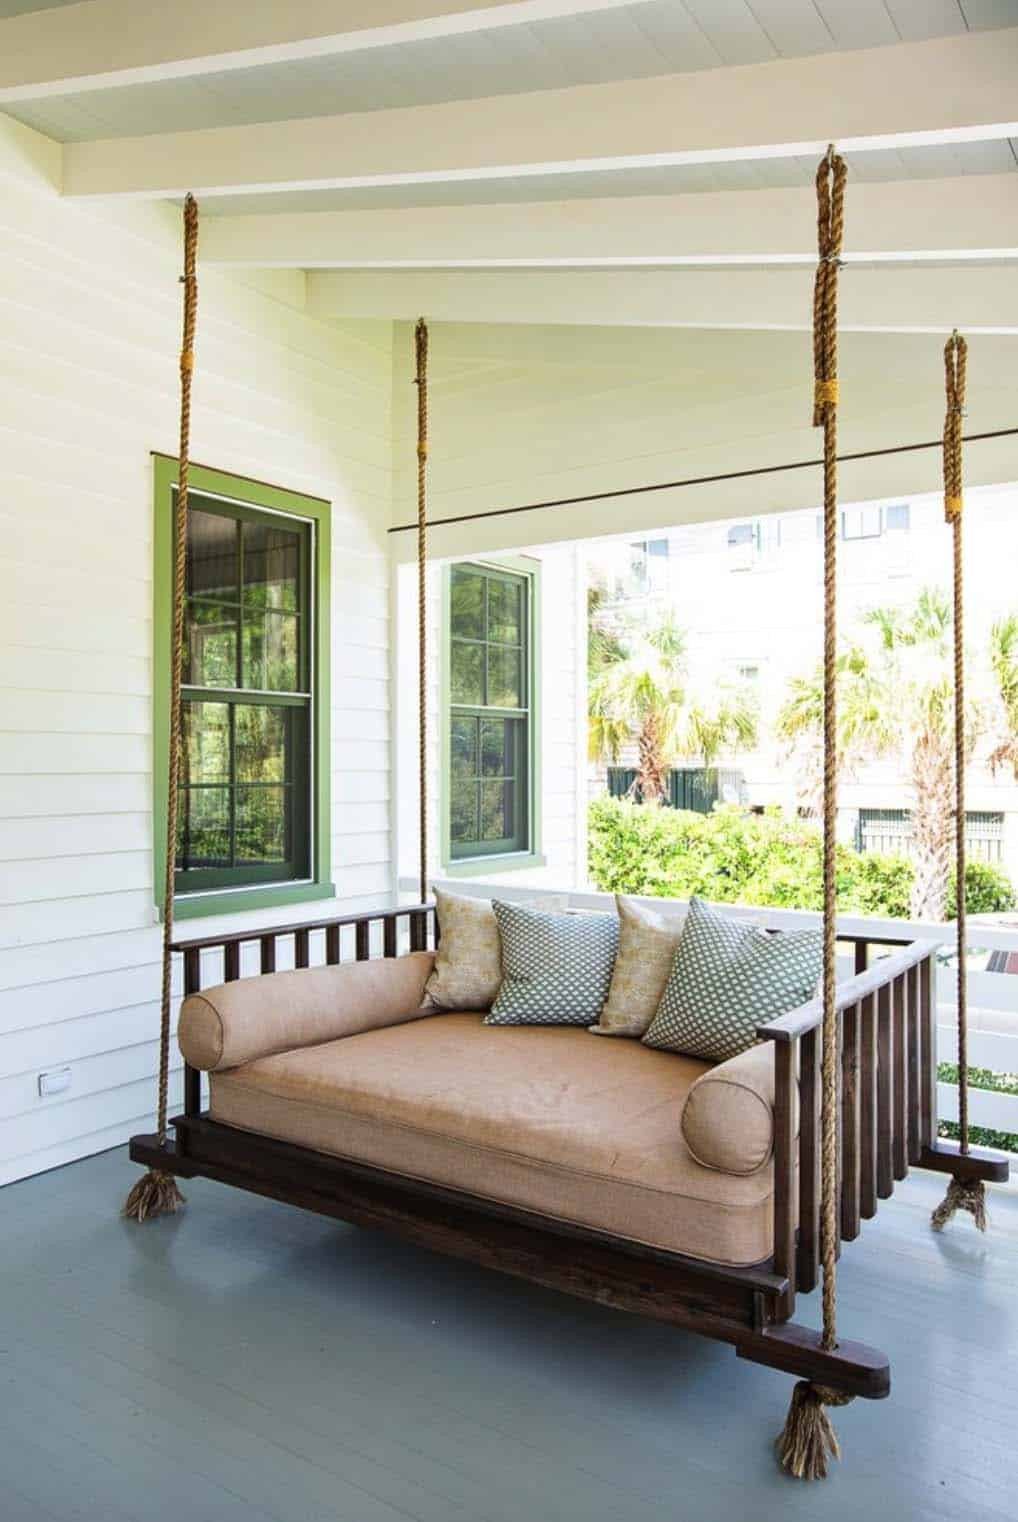 27 absolutely fabulous outdoor swing beds for summertime. Black Bedroom Furniture Sets. Home Design Ideas